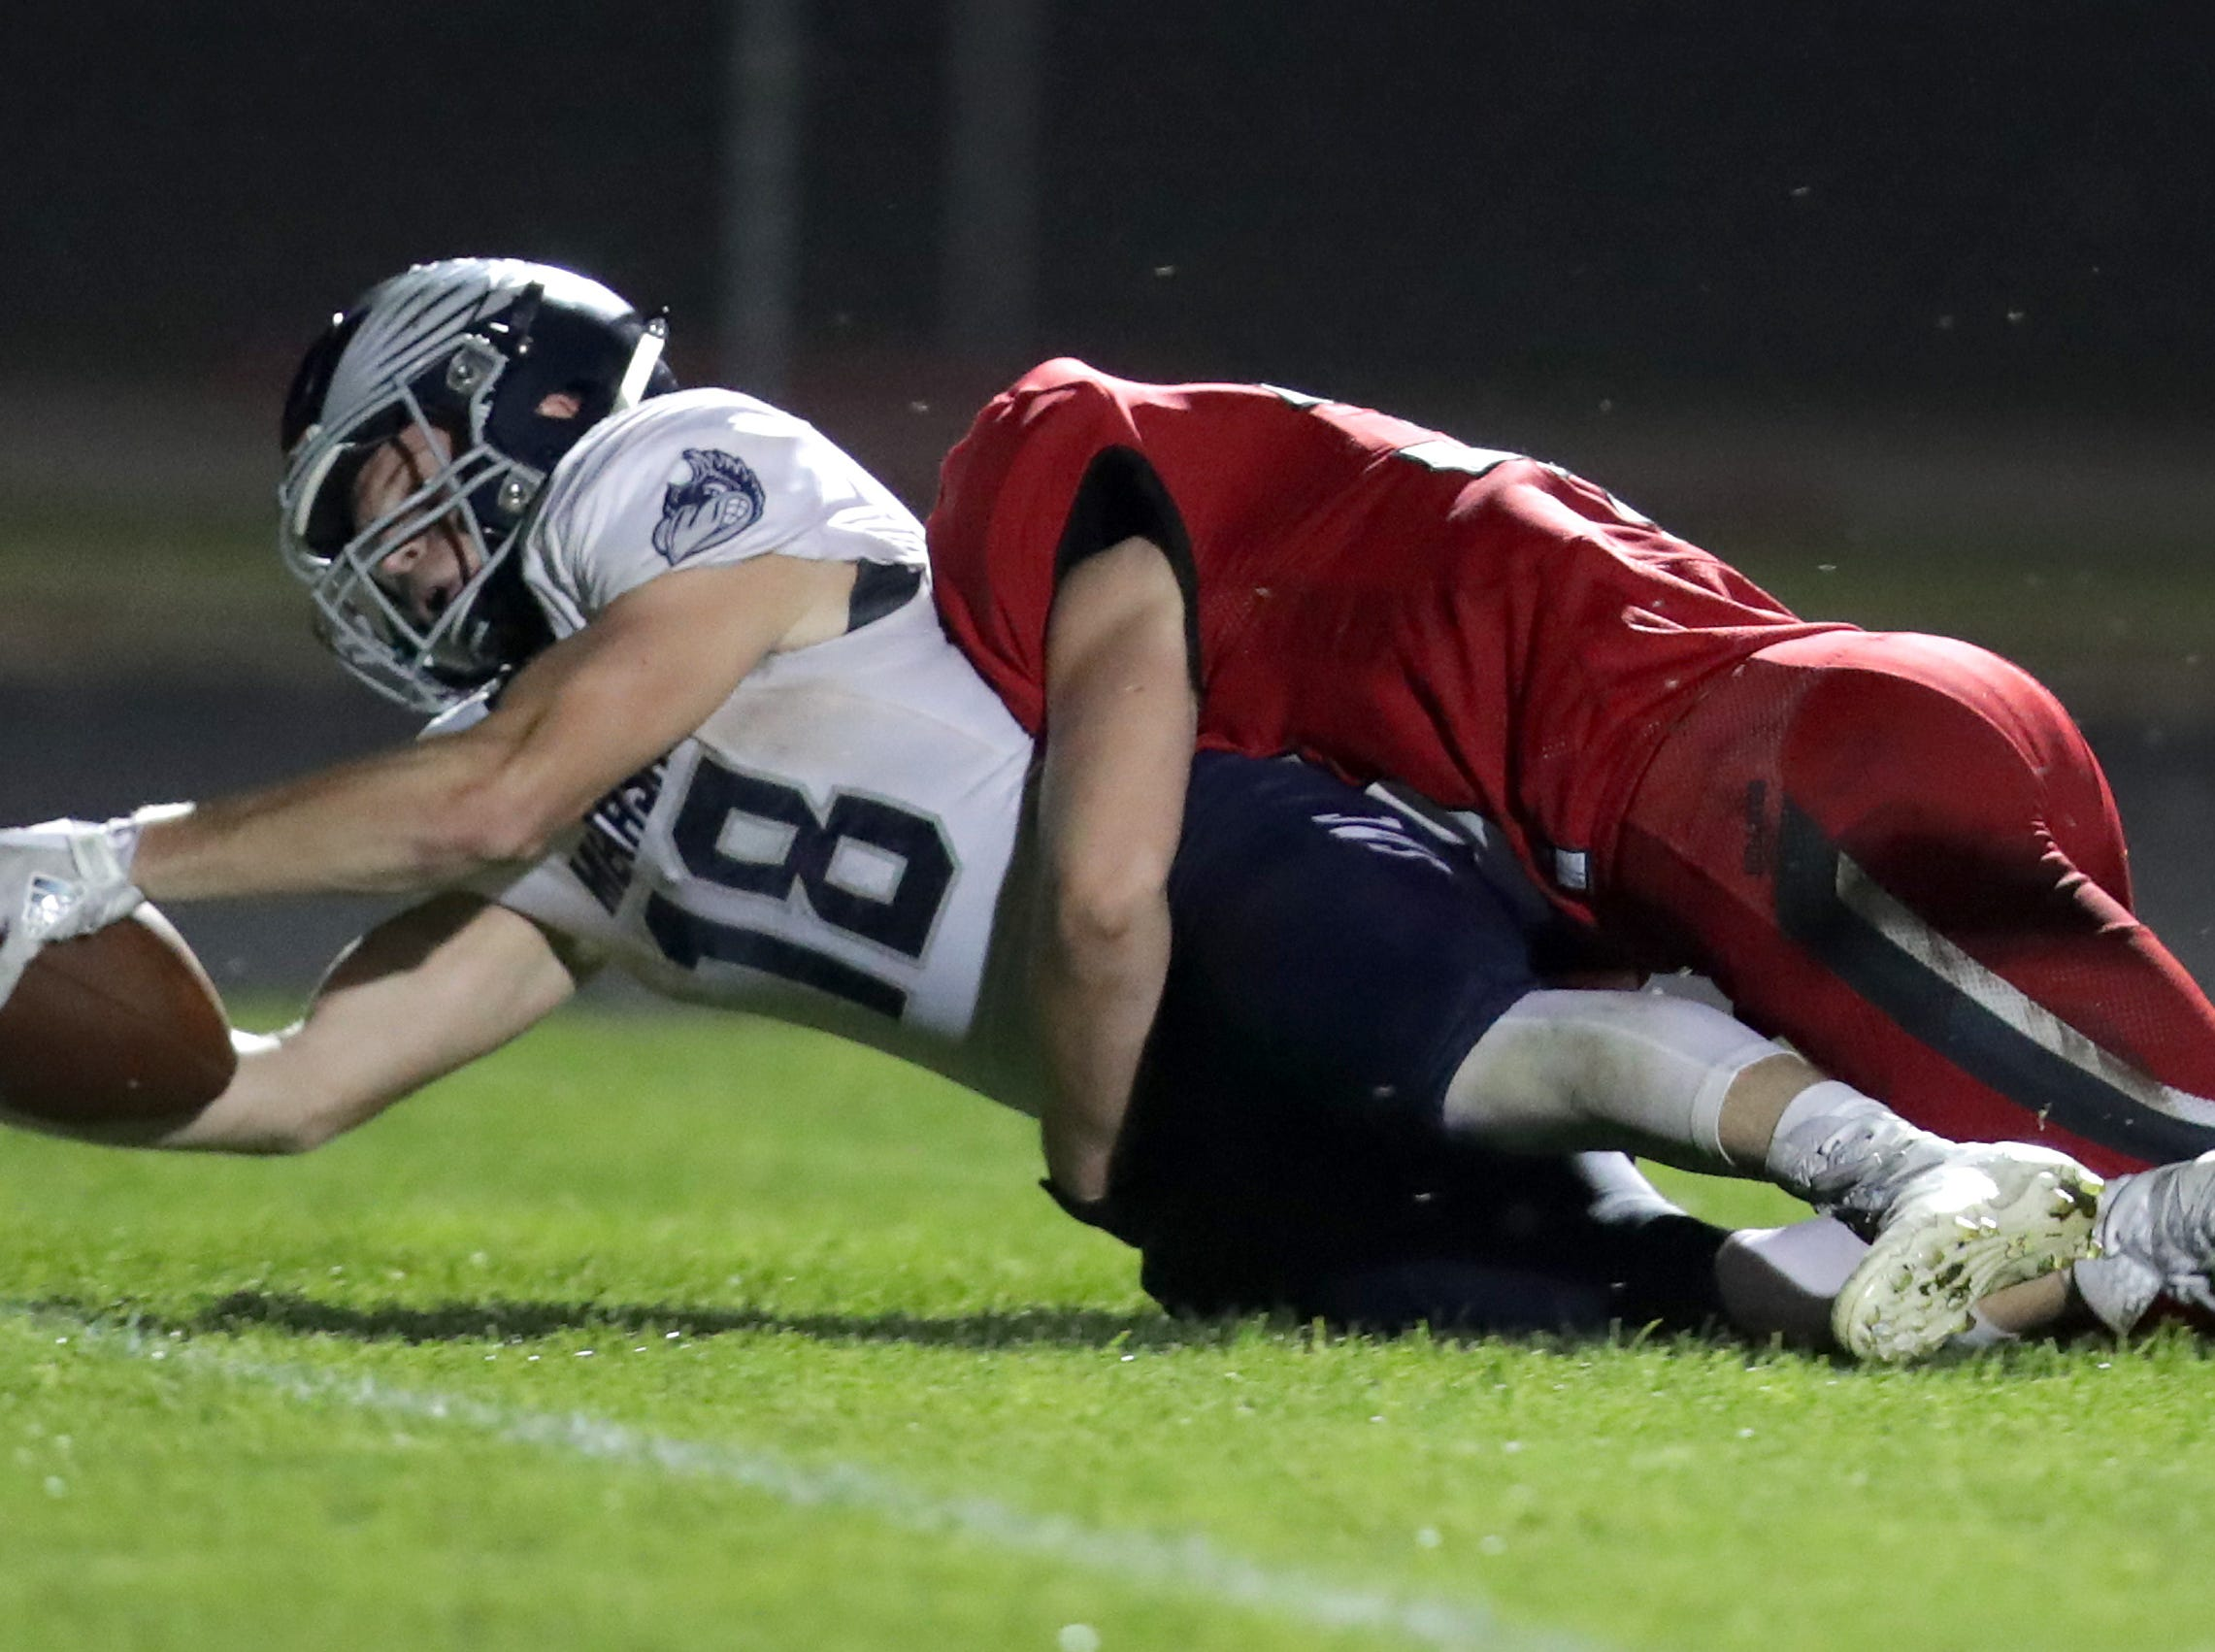 Menasha High School's #18 Riley Zirpel rushes for a second half touchdown against New London High School's #24 Sean Cortright during their football game on Friday, September 14, 2018, New London, Wis. Menasha defeated the Bulldogs 34 to 28.Wm. Glasheen/USA TODAY NETWORK-Wisconsin